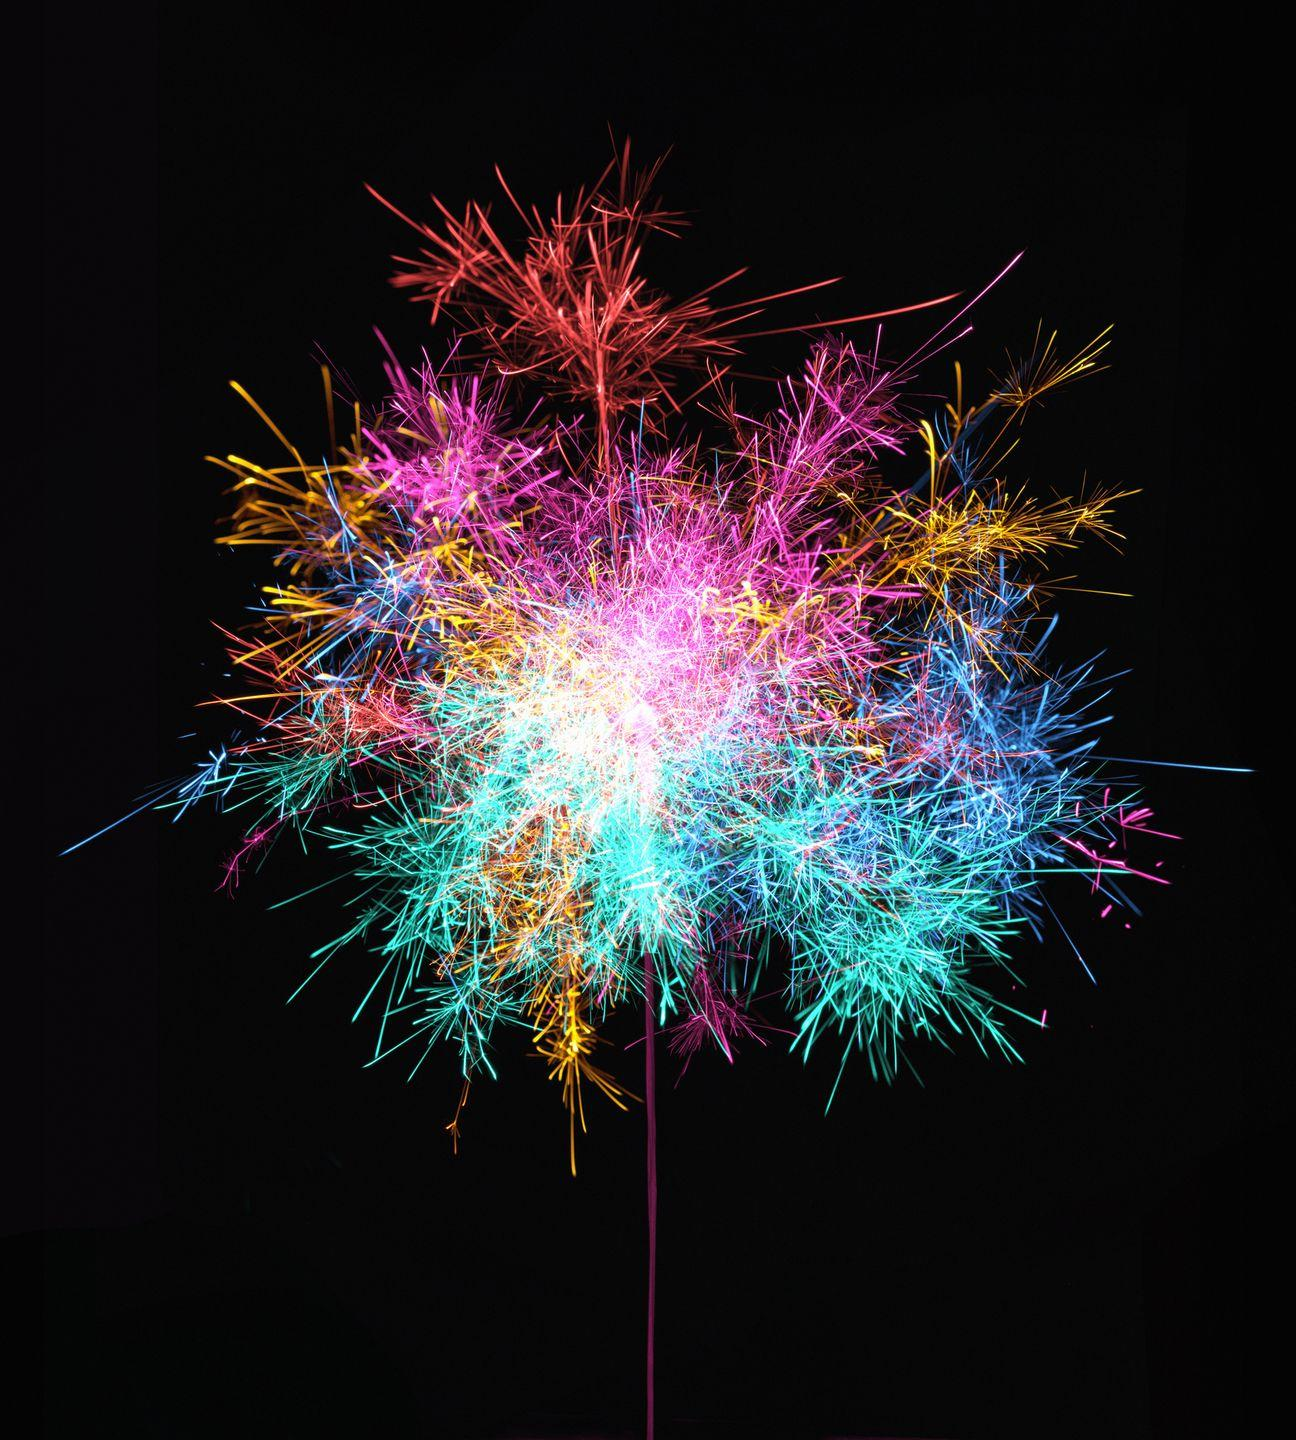 <p>If fireworks were strictly gunpowder, there'd be no excitement, really. They'd all just be balls of fire in the air. </p><p>Salts and other metal compounds allow a firework to detonate in bursts of bright blue or rich red. To make red, fireworks contain strontium salts and/or lithium salts, with the strontium producing a brighter red reaction. Calcium salts make orange, while sodium salts (as in table salt) explode in yellow. Green comes from the compound barium chloride, blue from copper chloride. </p><p>Silver or white colors are made of aluminum or magnesium. If you want purple, you have to work a little harder: Combine strontium salts for red and copper chloride for blue to create a purple explosion.</p>